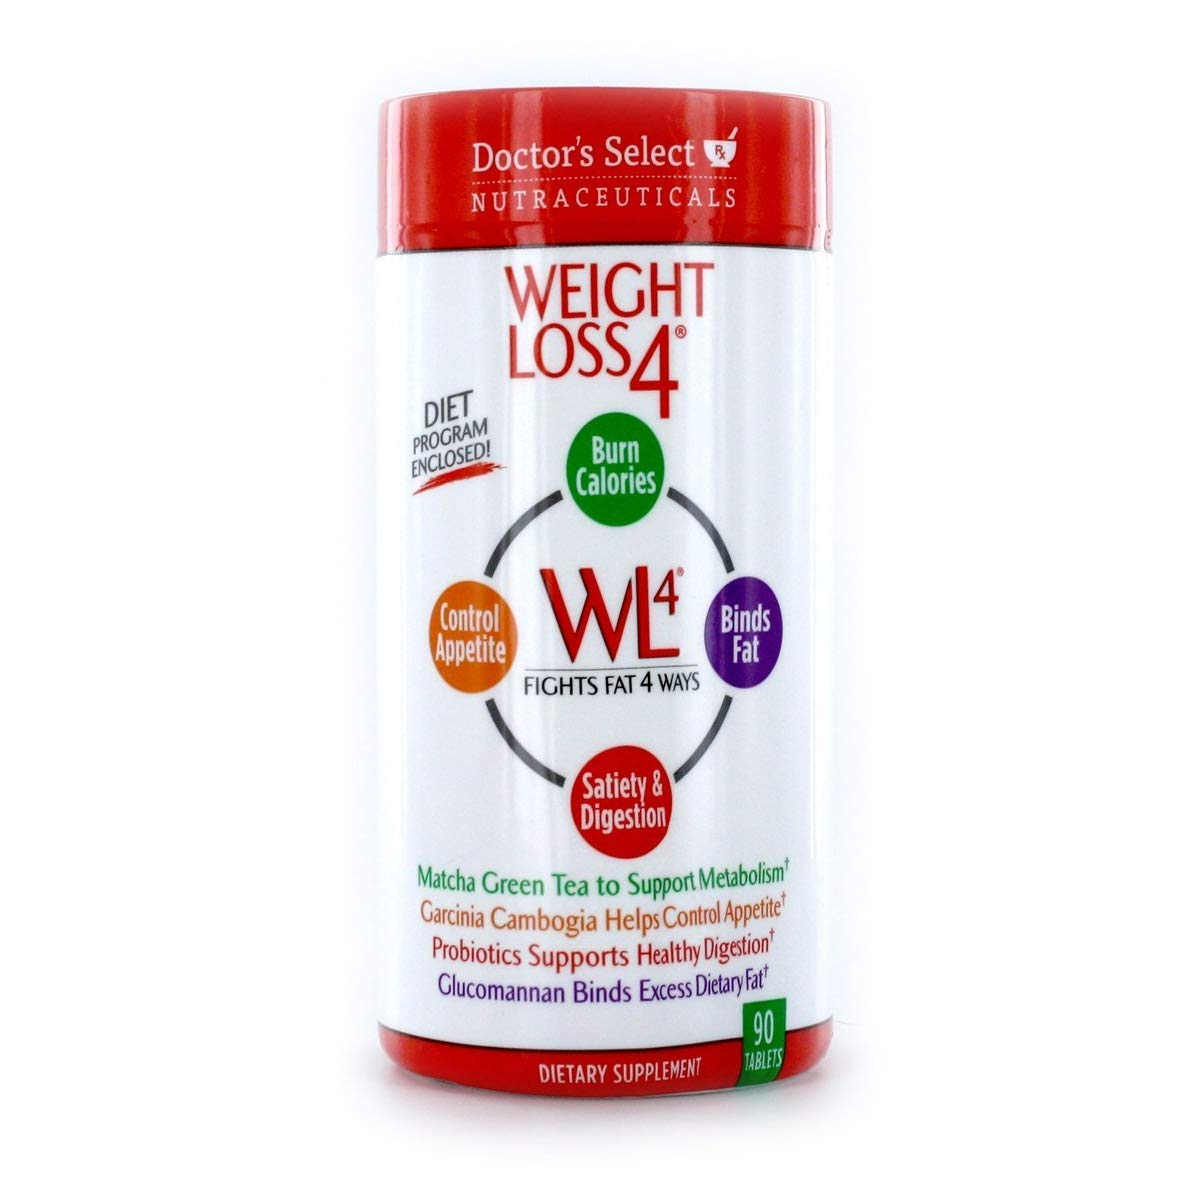 Doctor's Select Weight Loss 4, Tablets 90 ea (Pack of 3) by Doctor's Select